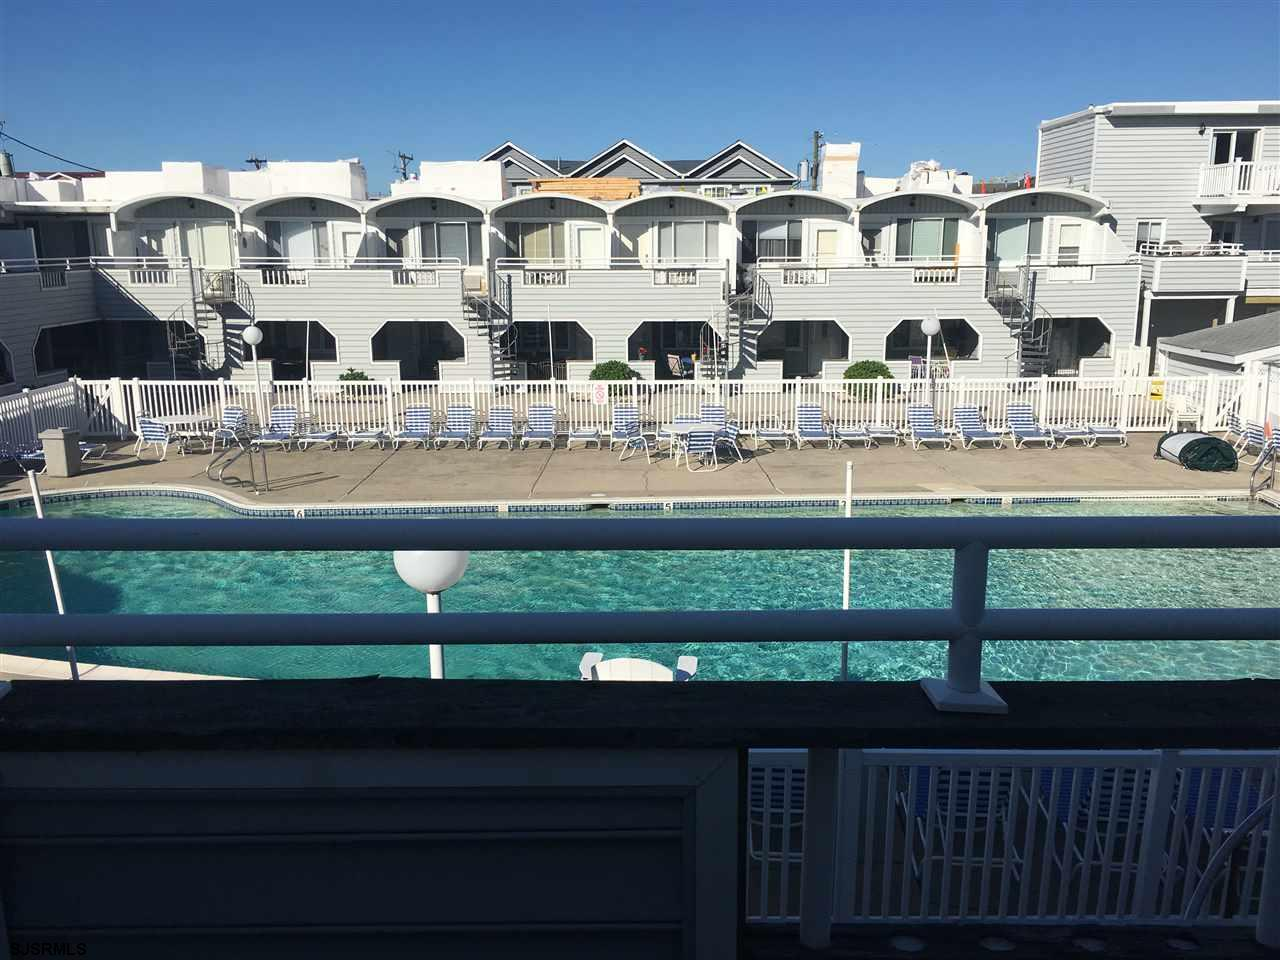 Best Location in Margate! Completely renovated 1br condo with balcony and water views in the Margate